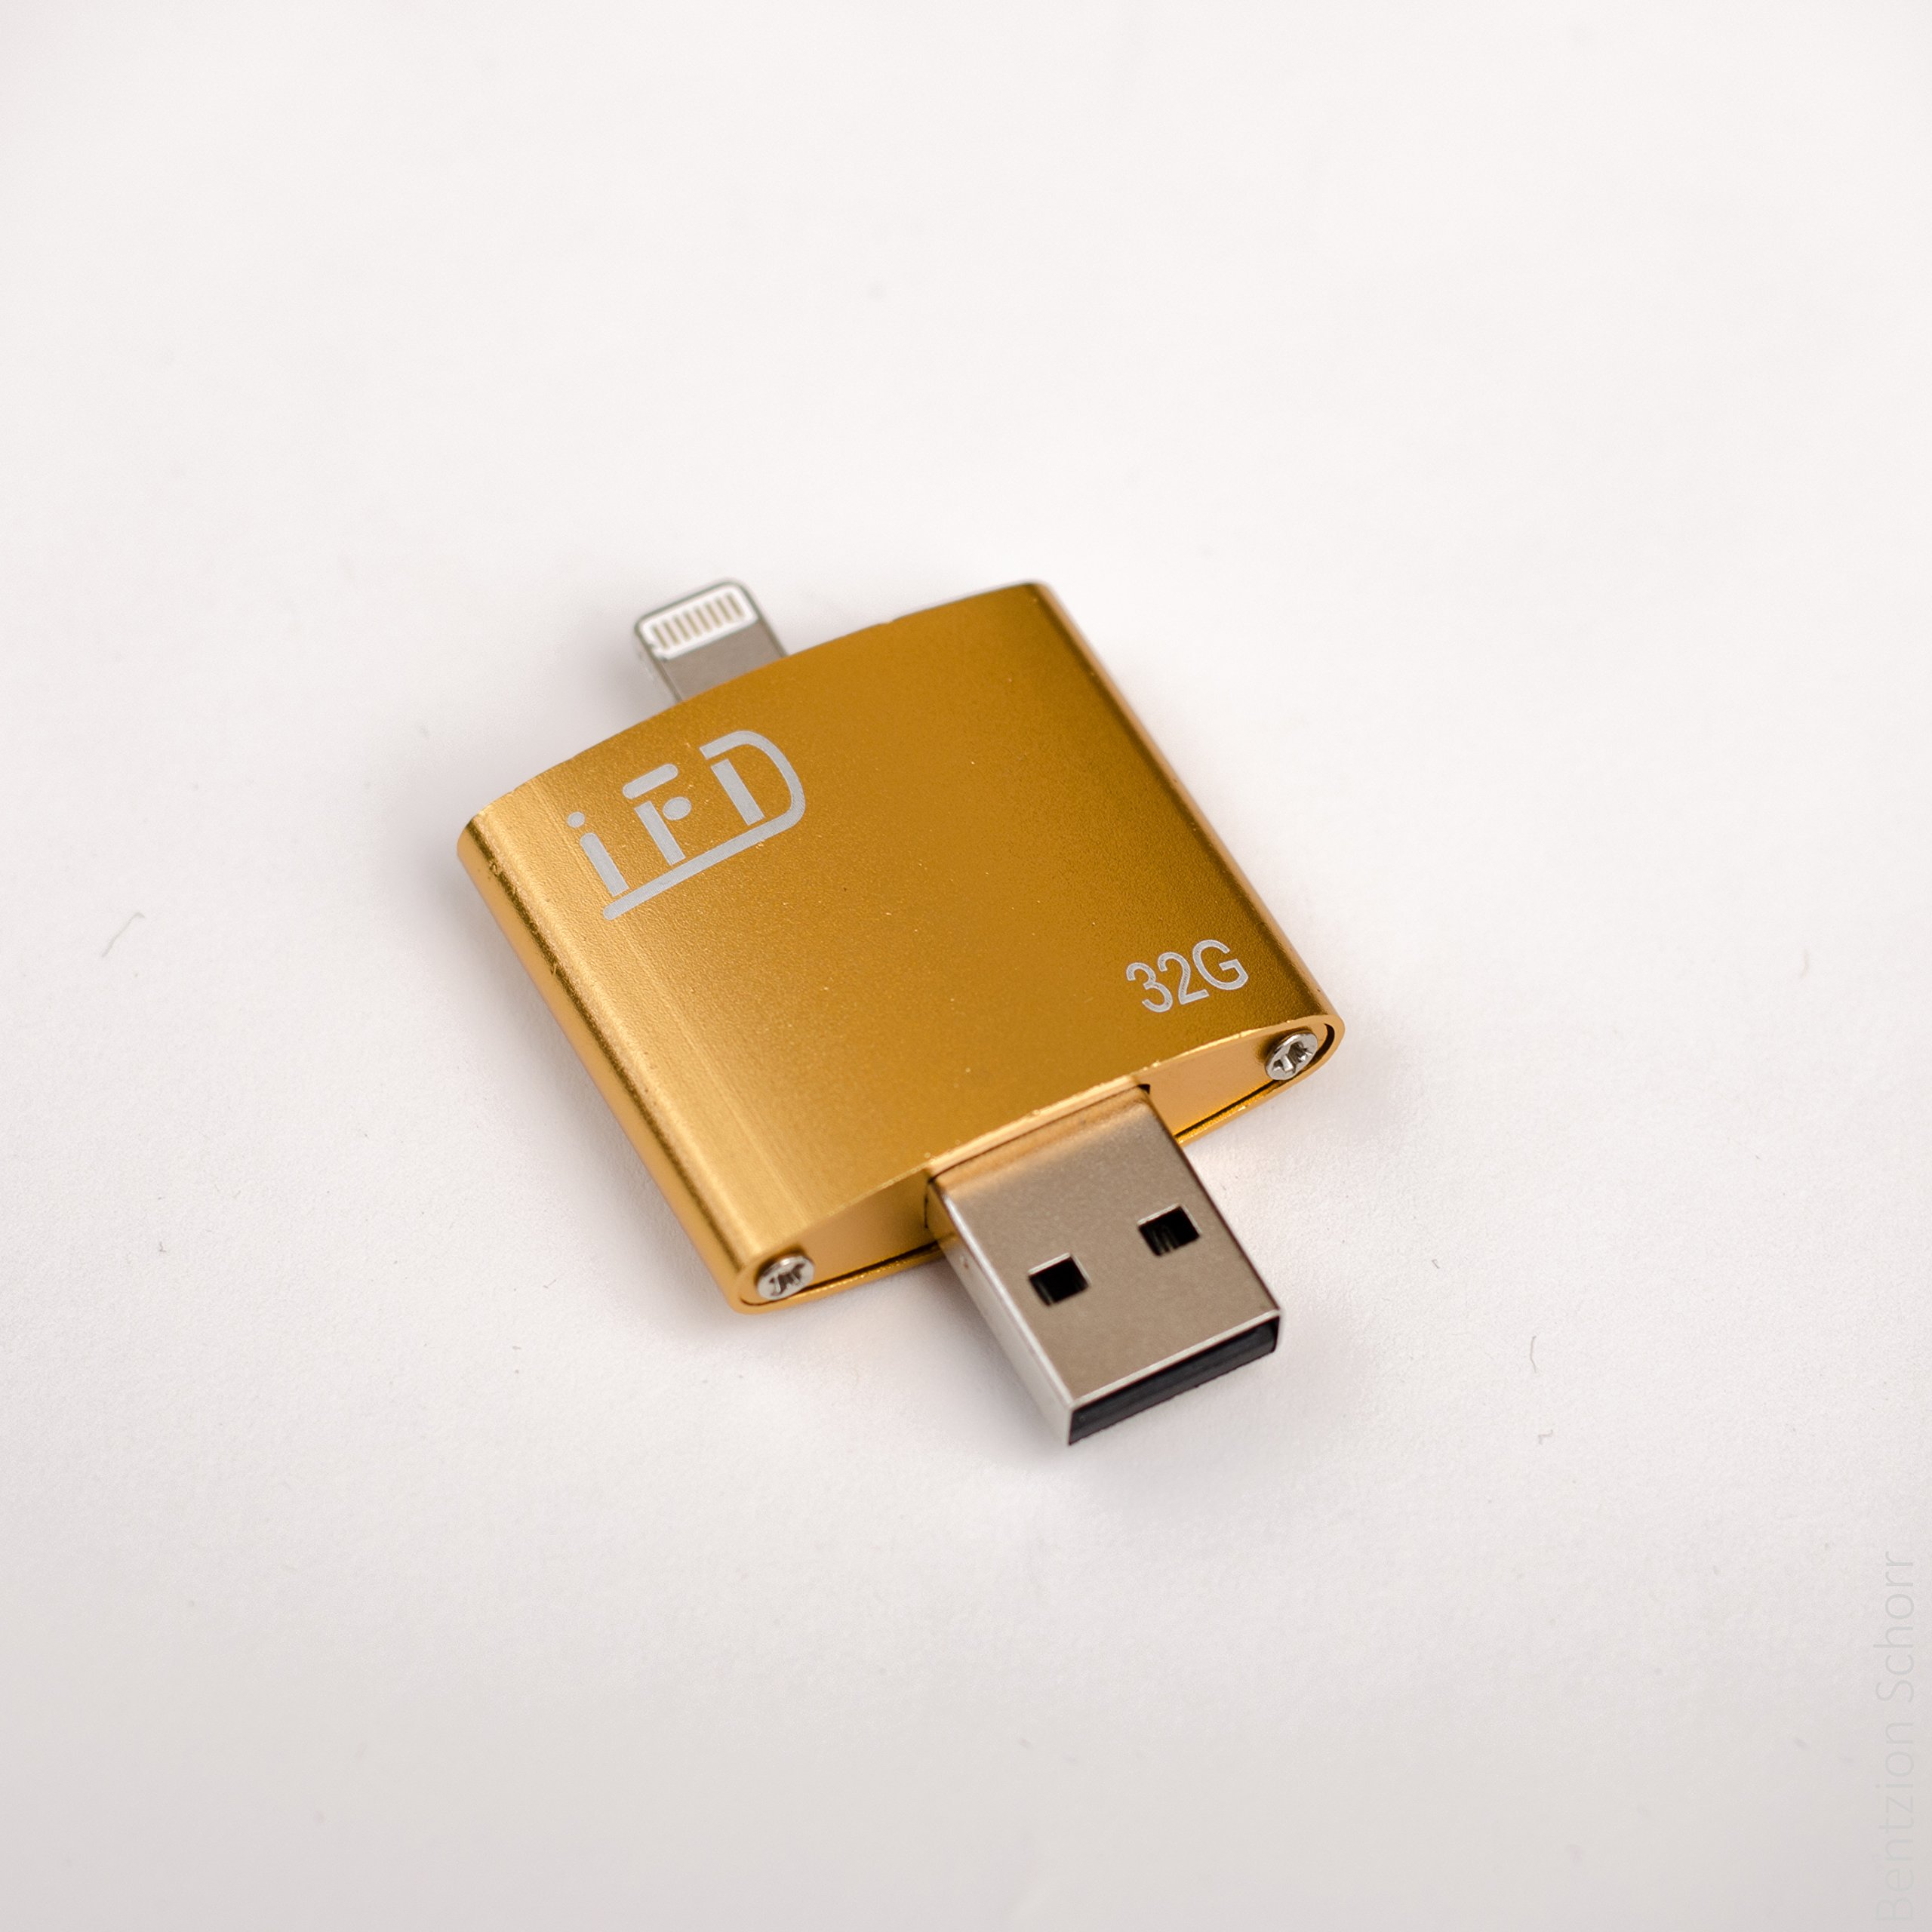 Crater: i-flashdisk 32gb for Ipod/ipad/iphone/mac/pc (8 Pin Connector)